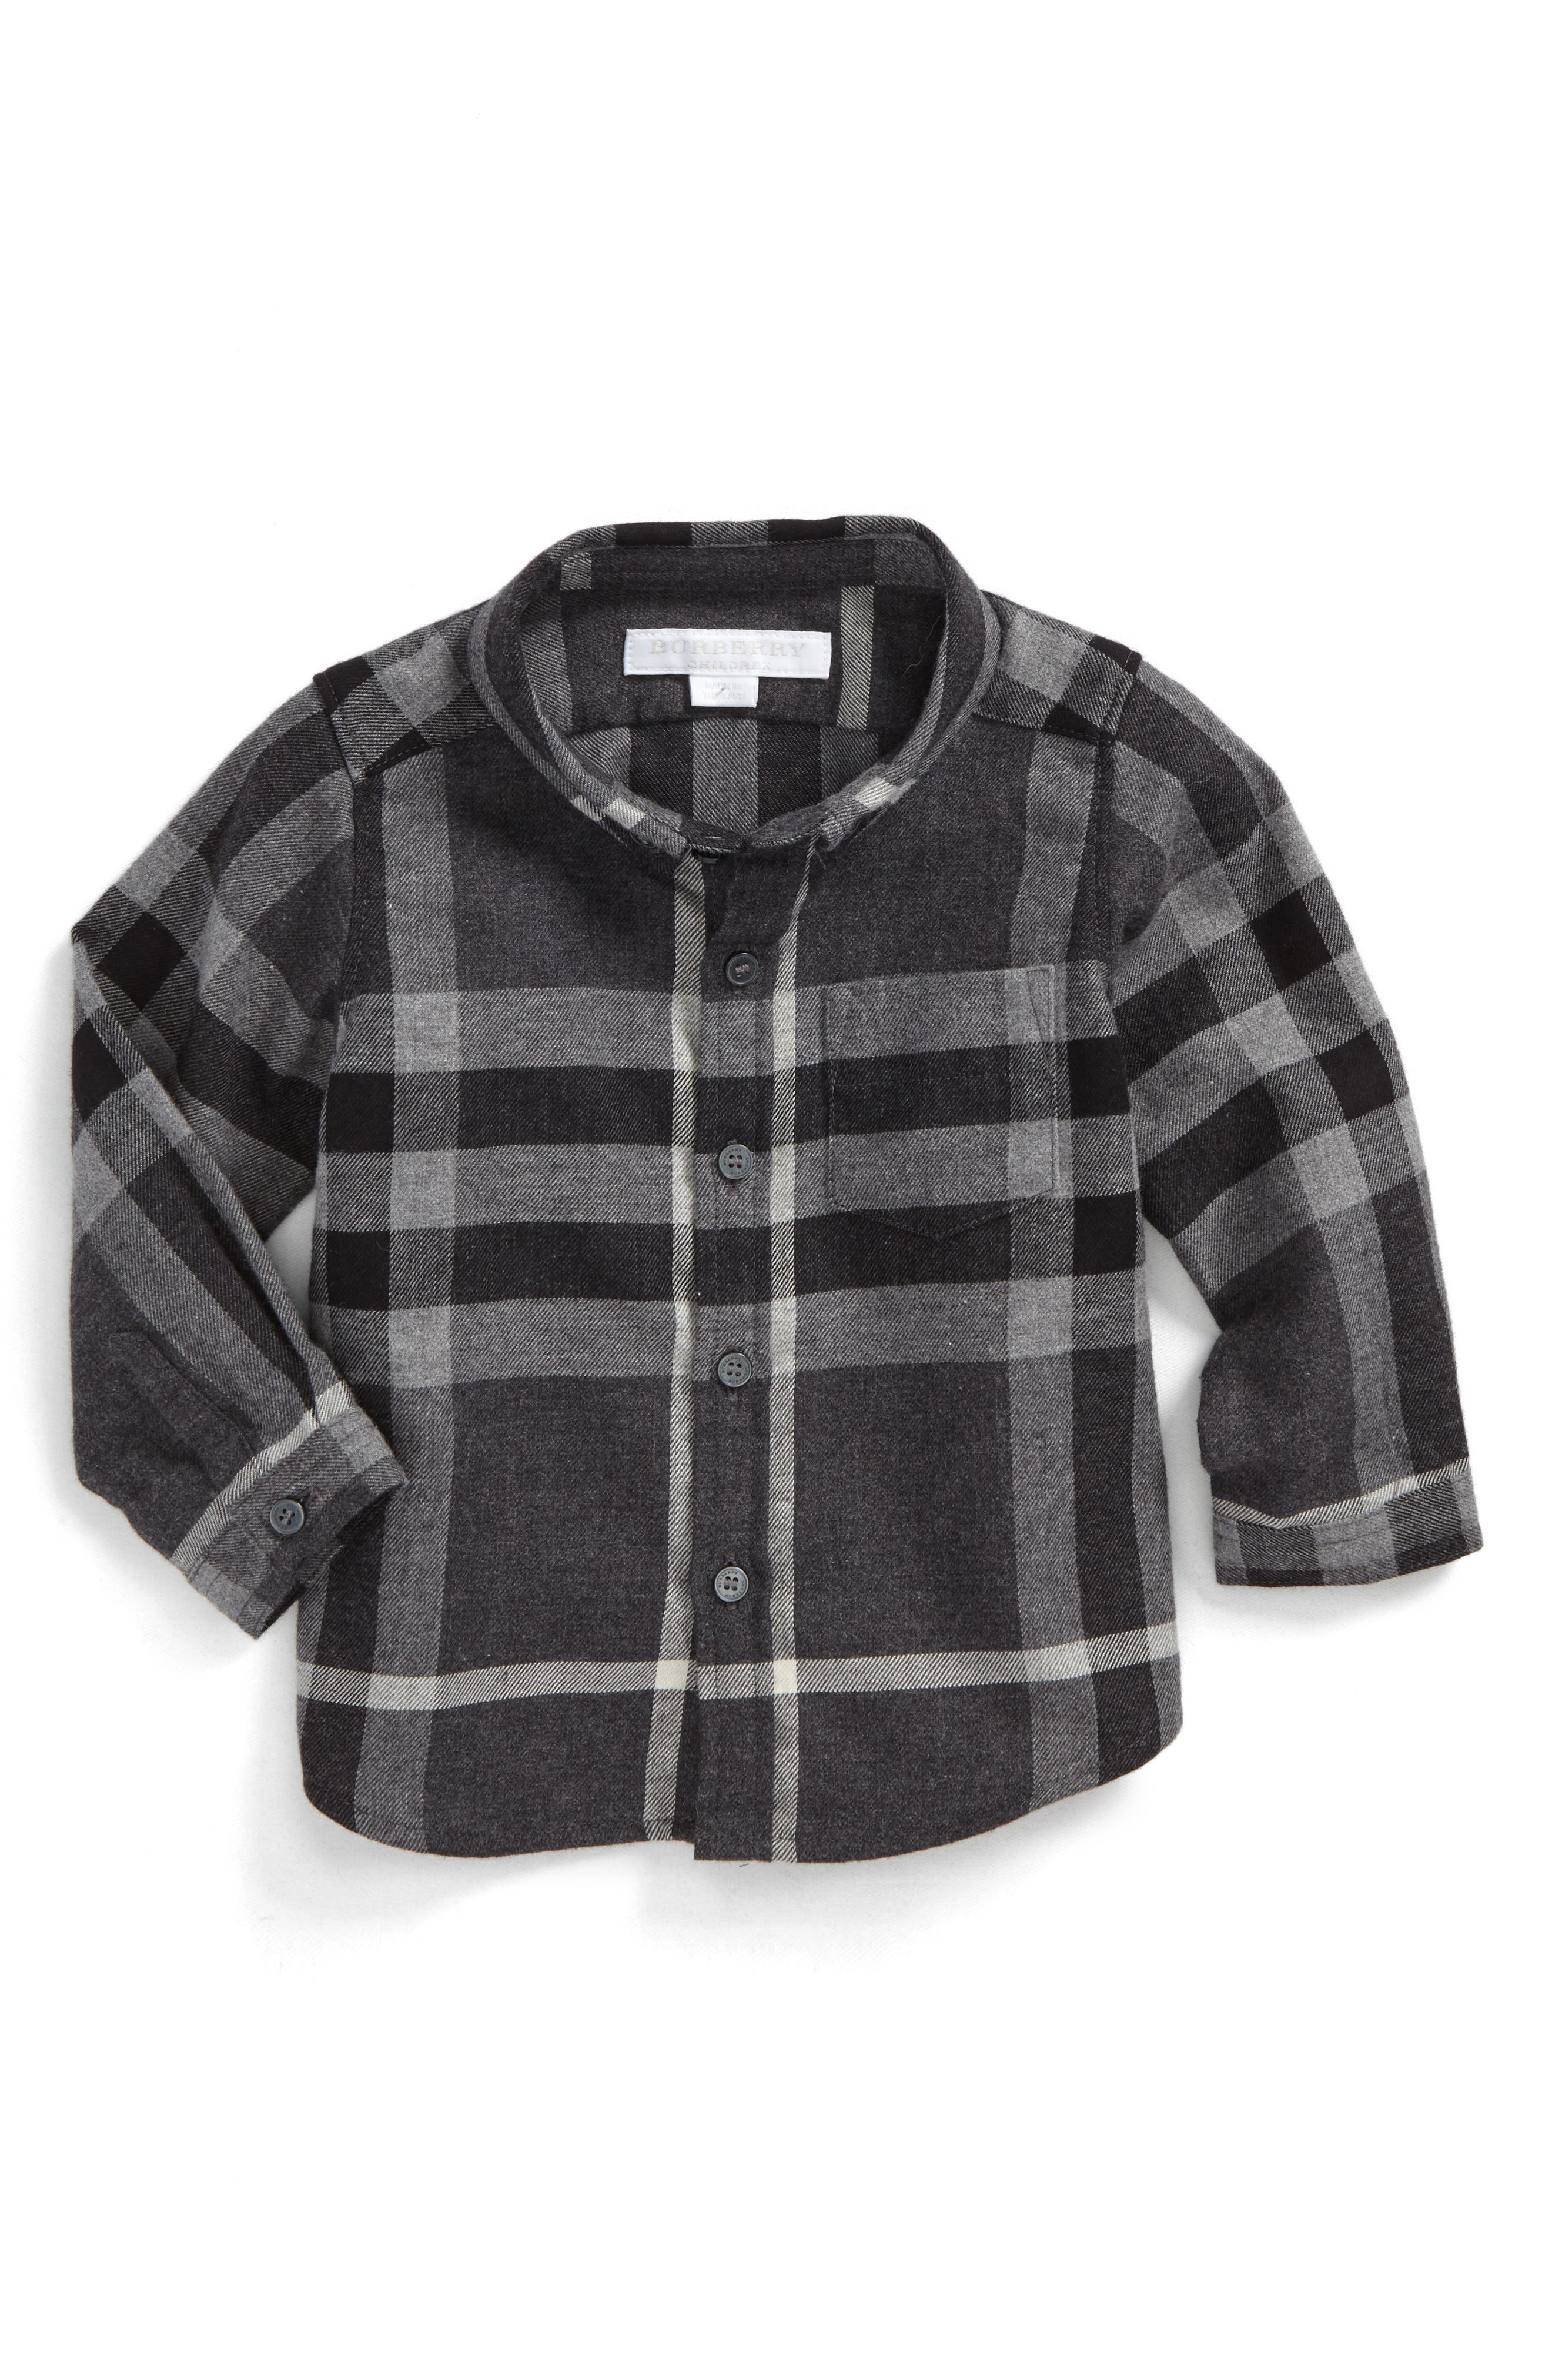 Alternate Image 1 Selected - Burberry Mini Fred Check Woven Shirt (Baby Boys)